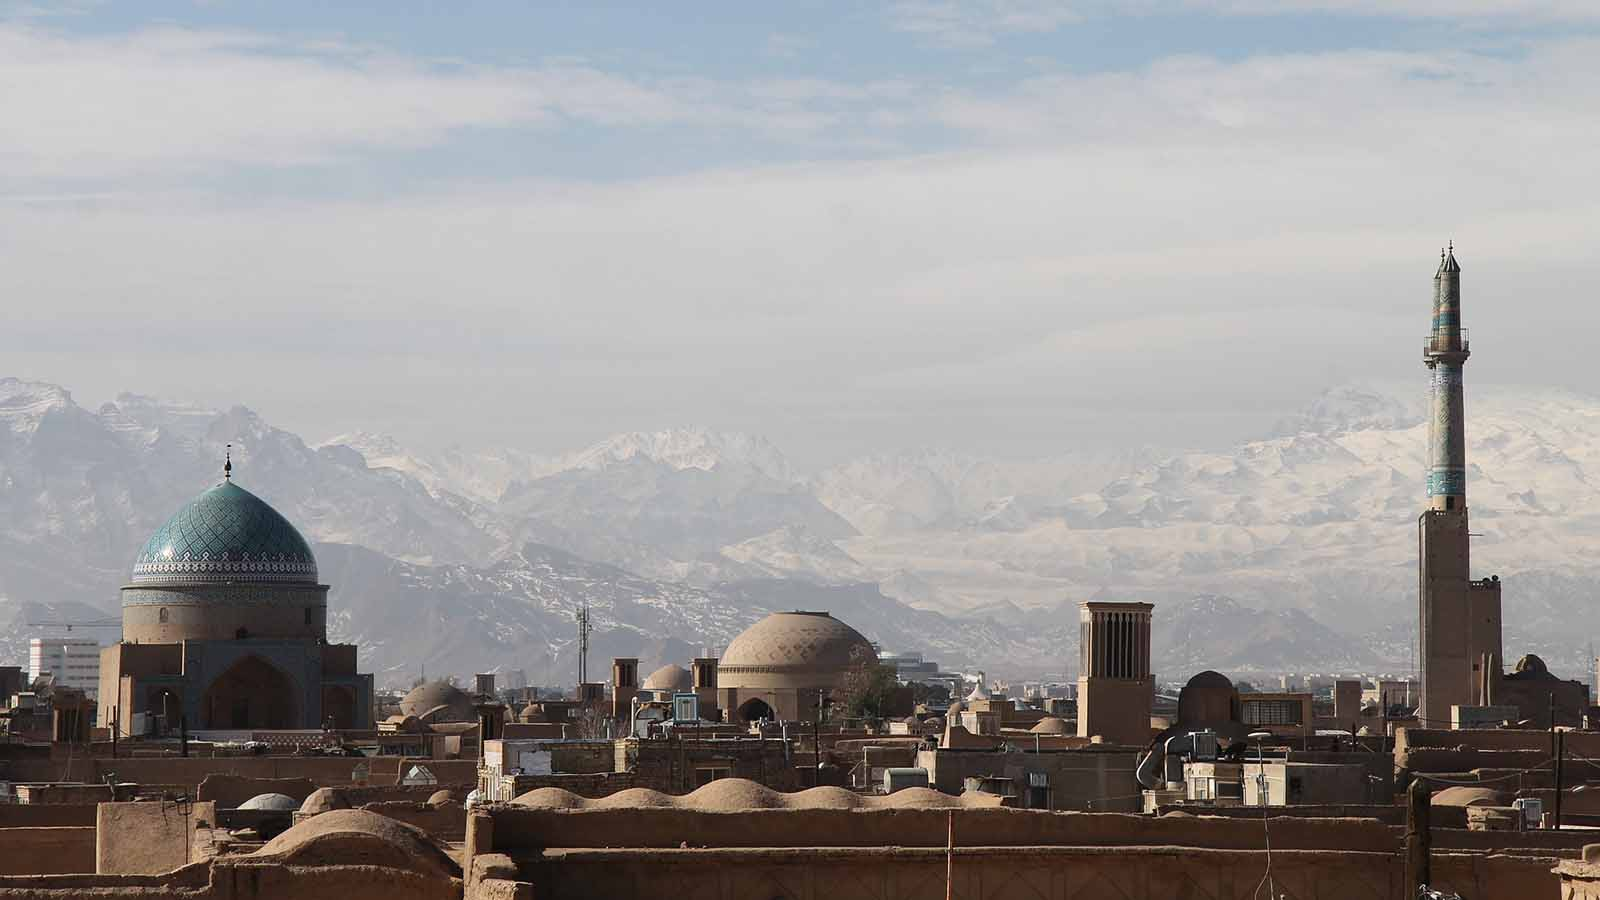 Iranian buildings and mosques with mountains in the horizon.